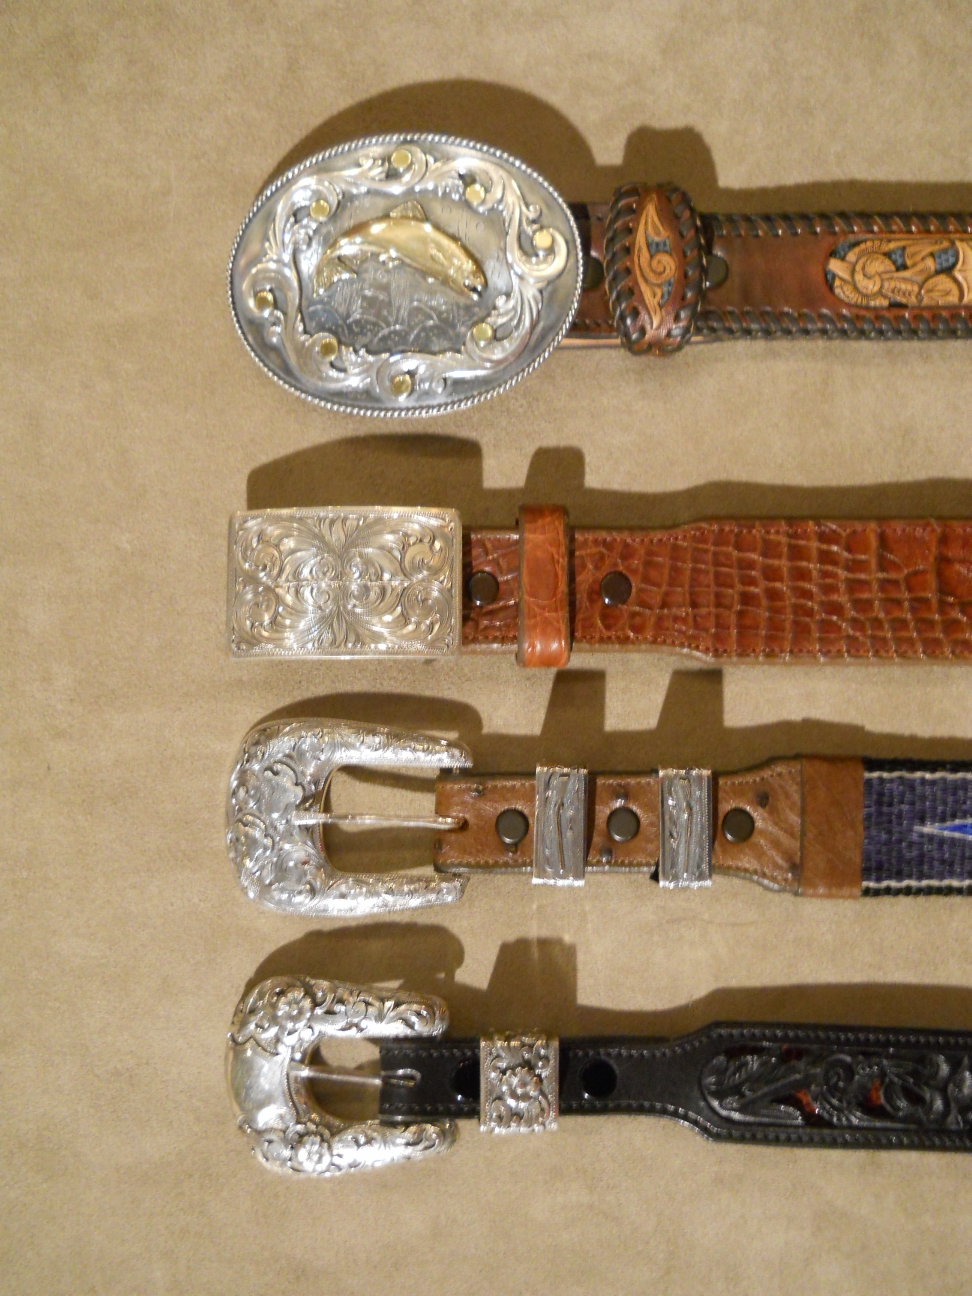 Buckle Tip Sets Tom Taylor Belts Buckles Bags Range Writer Blog Cayuse Western Americana